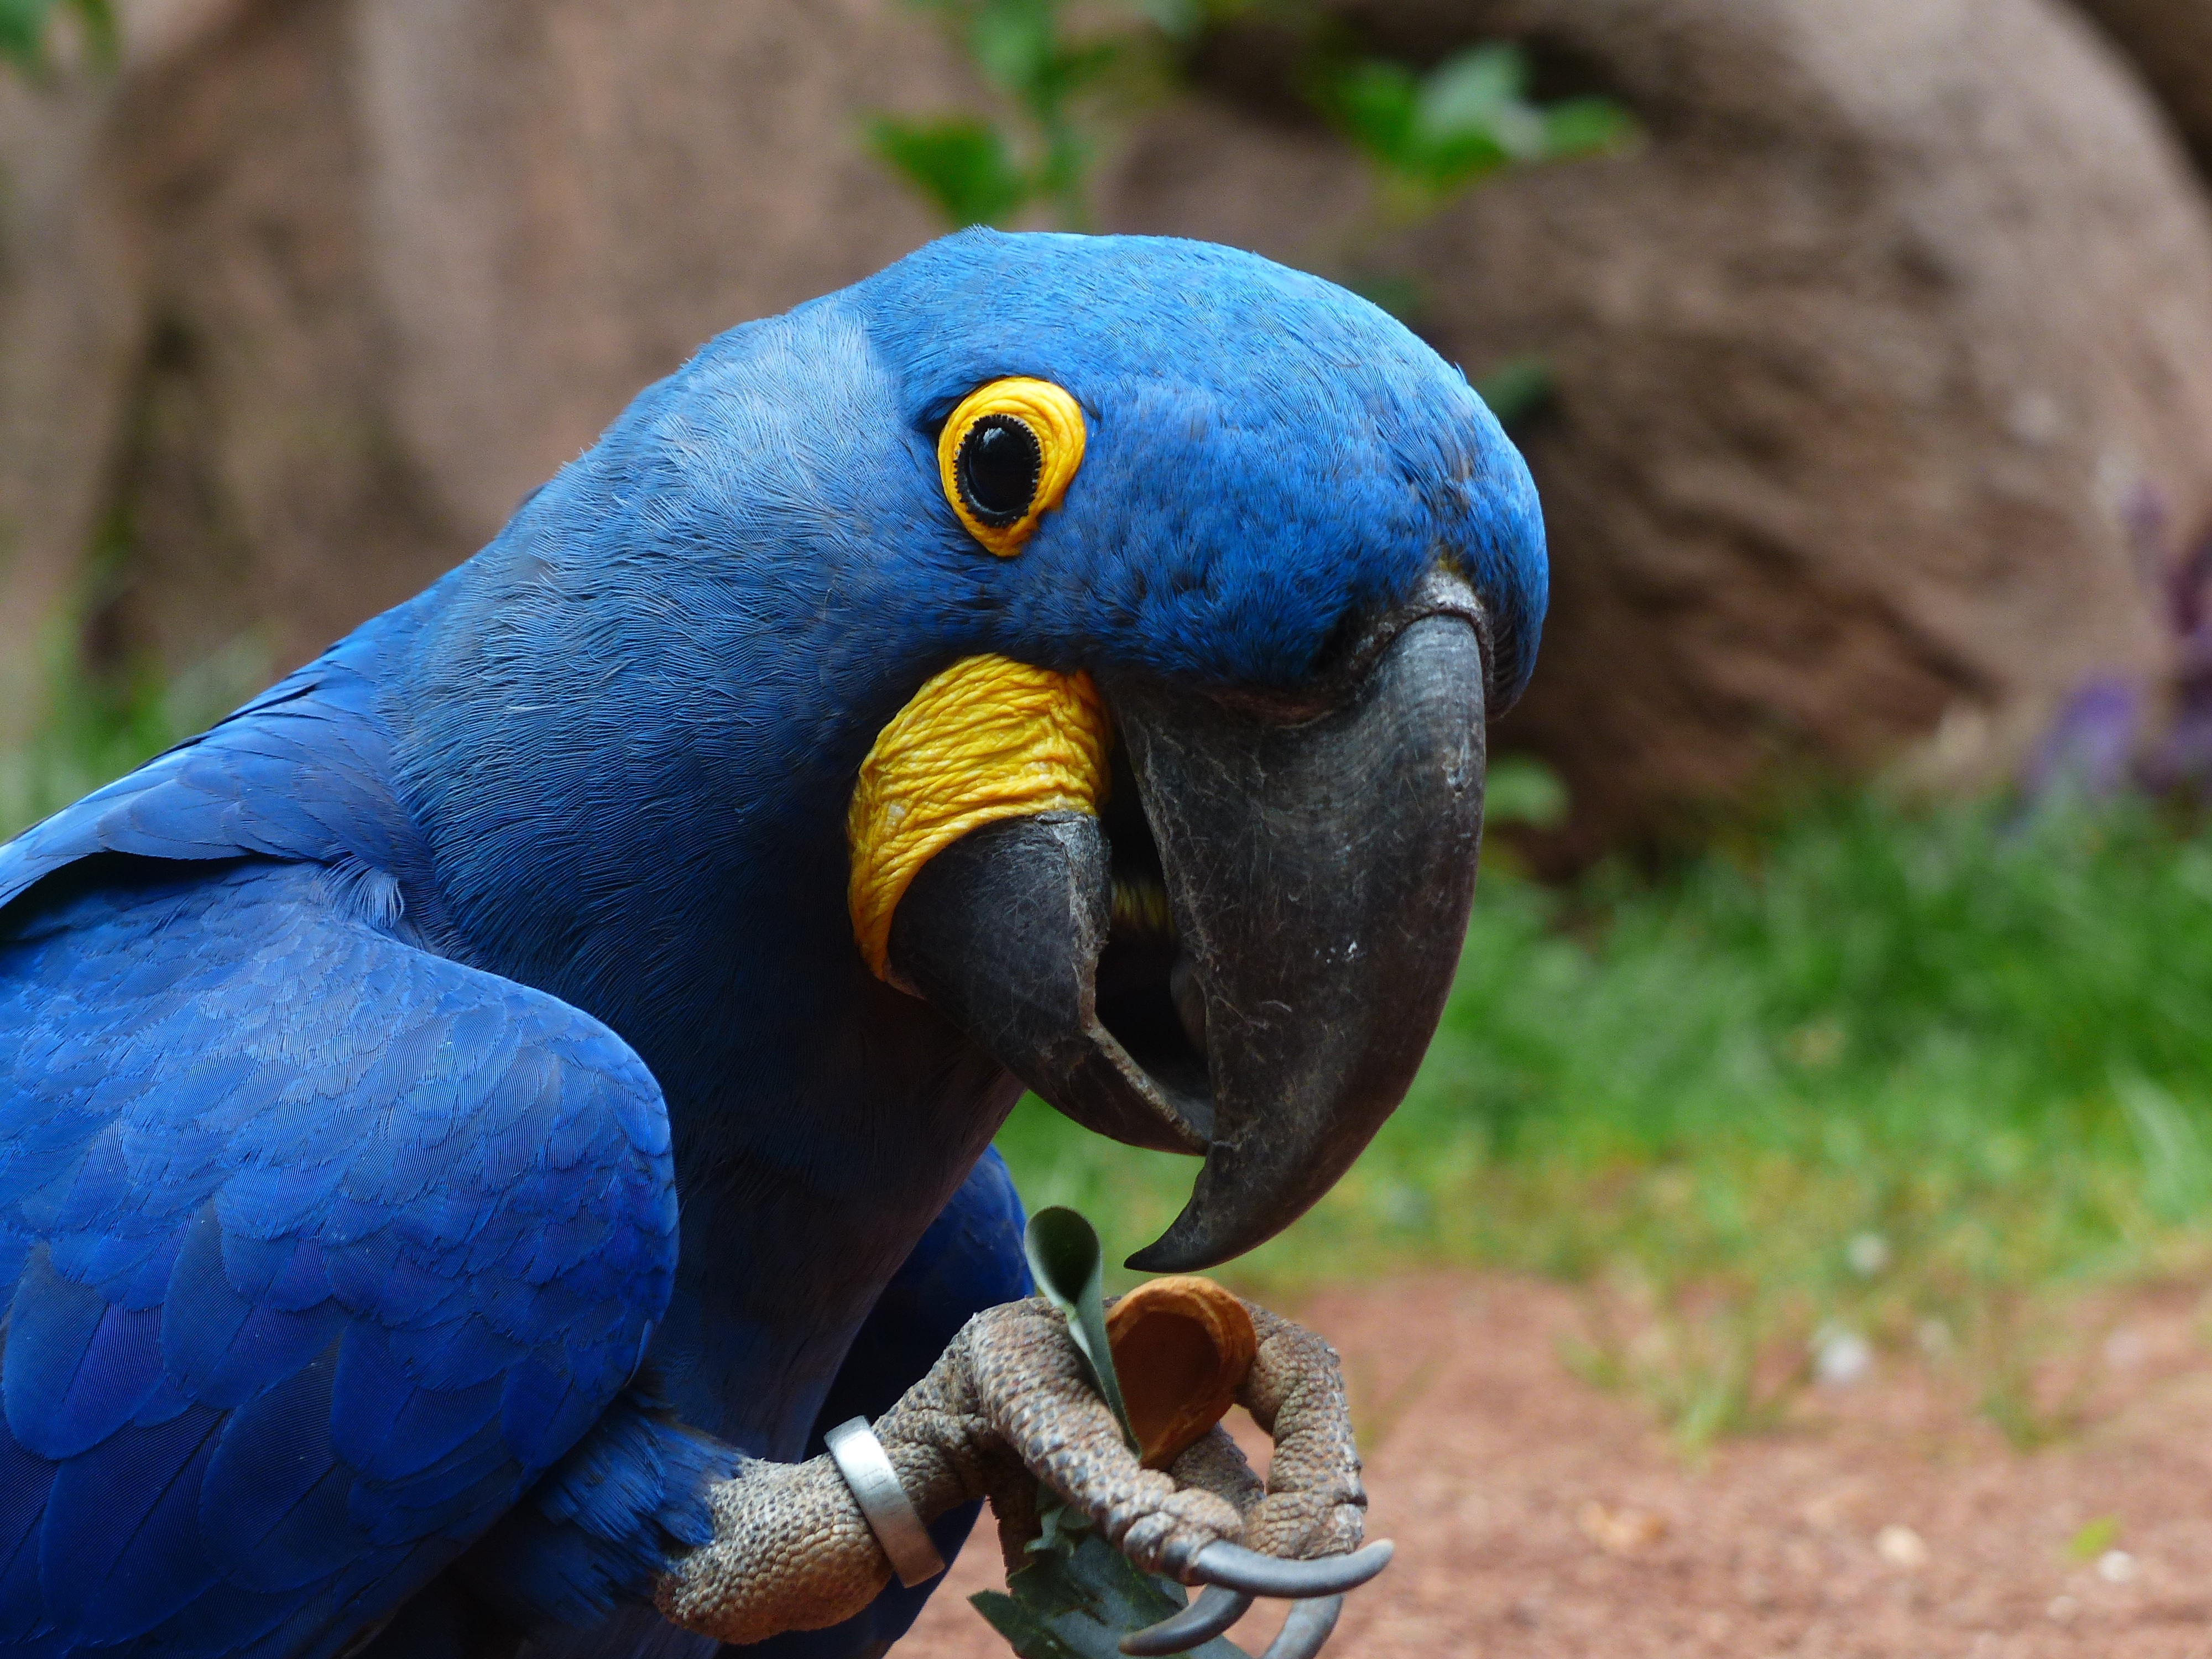 96911 download wallpaper Animals, Parrots, Macaw, Bird, Beak screensavers and pictures for free